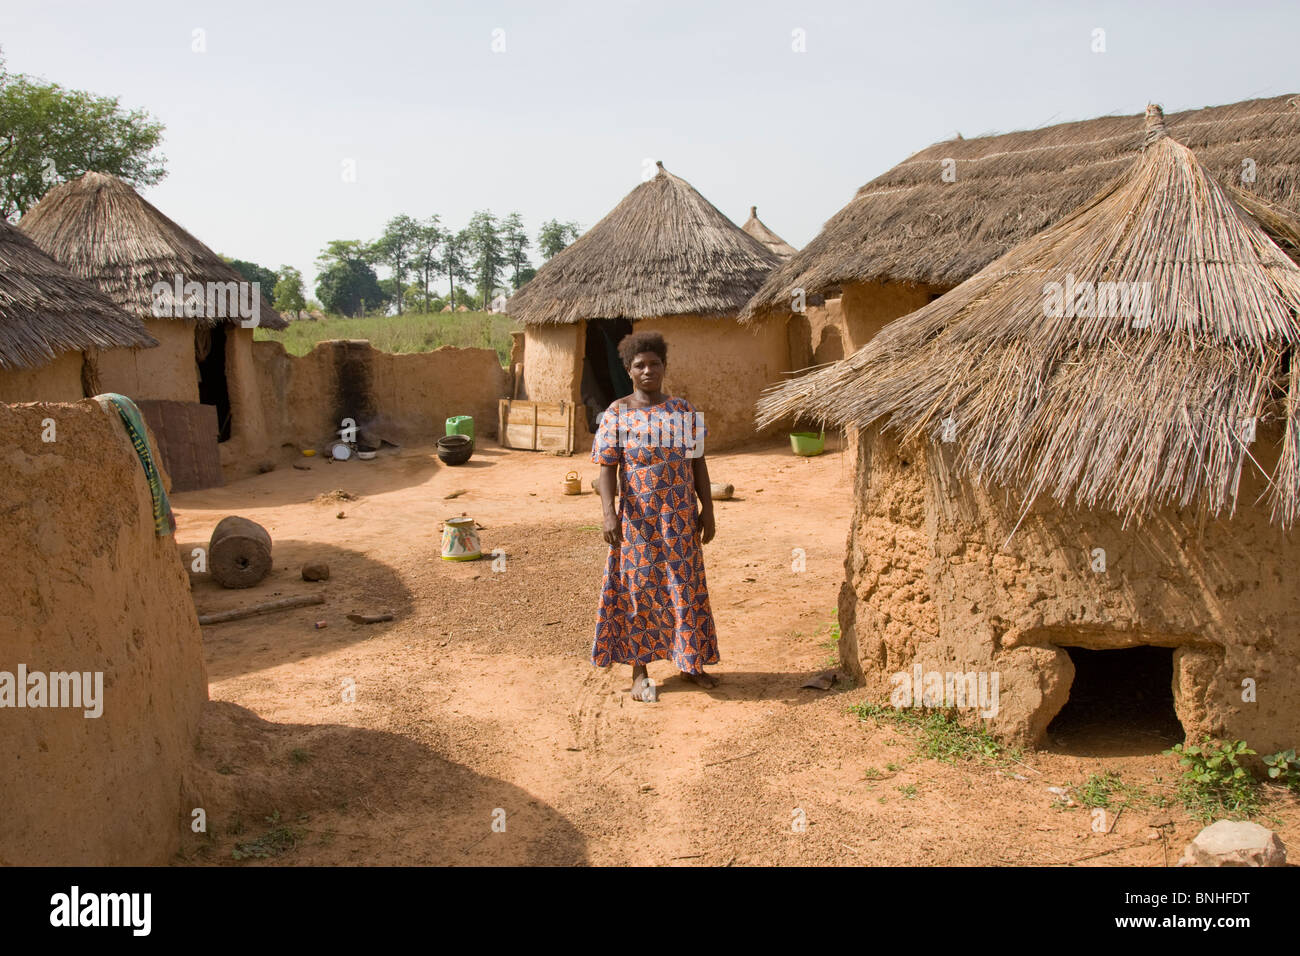 Mamprusi woman at the village of Sor No. 1, Gonja triangle, Damango district, Ghana. Stock Photo